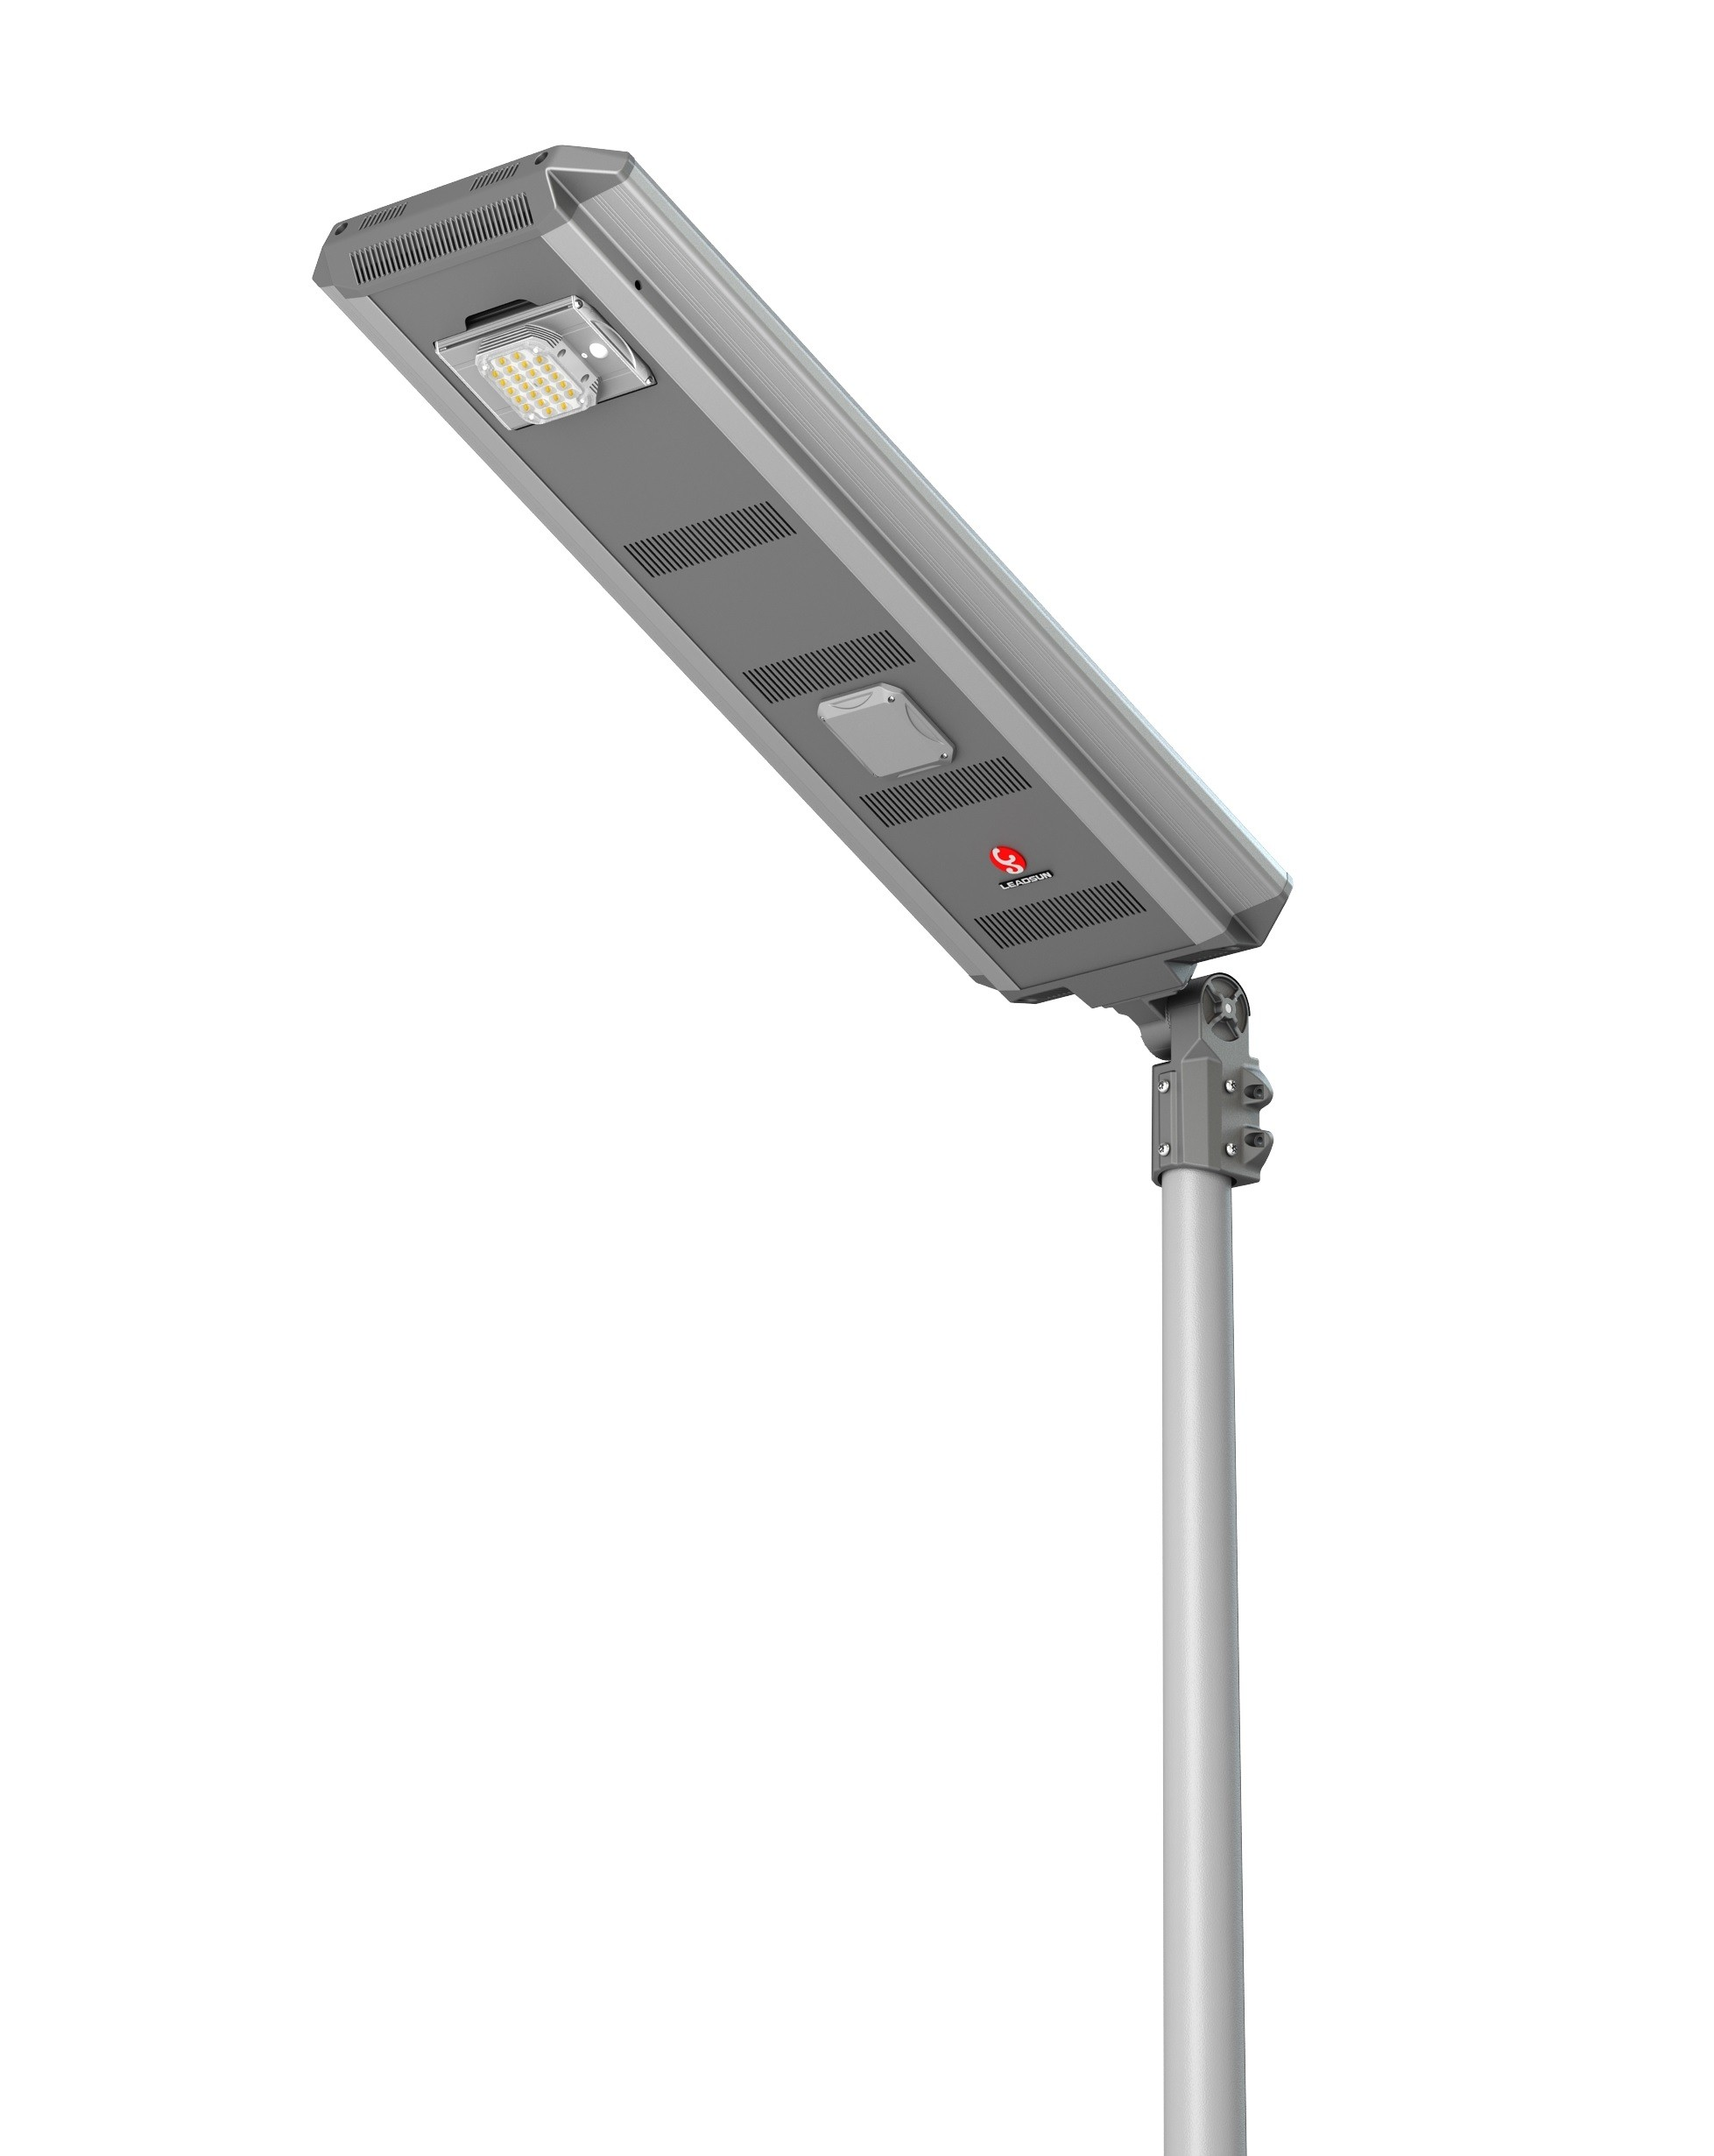 HC828AE3C8020LMC - Solar Street Light AE3C all in One, 80W PV, 20W Cree LED